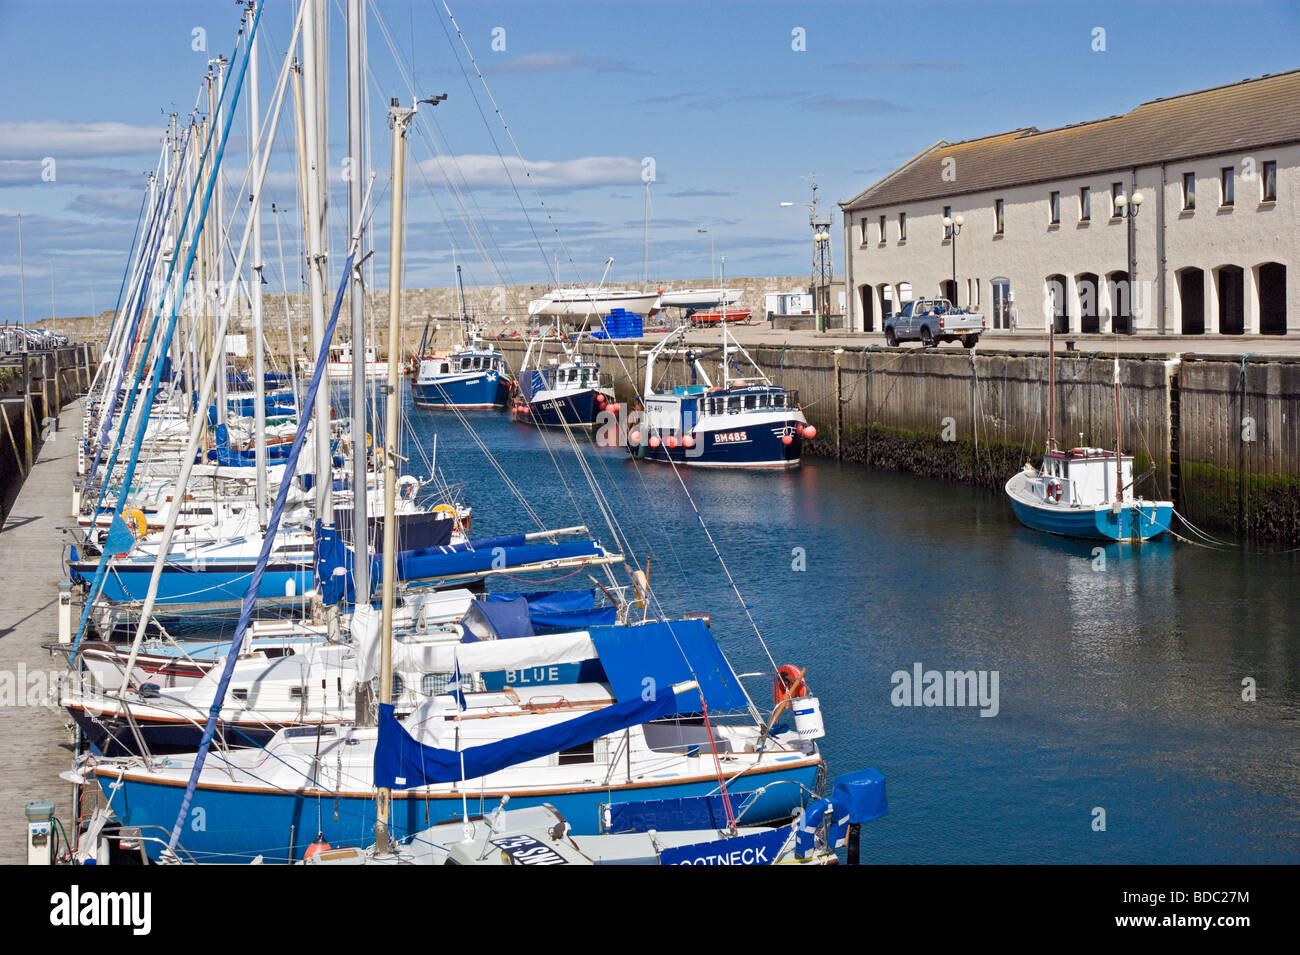 Lossiemouth harbour Moray Scotland with sailing and other pleasure boats moored. - Stock Image